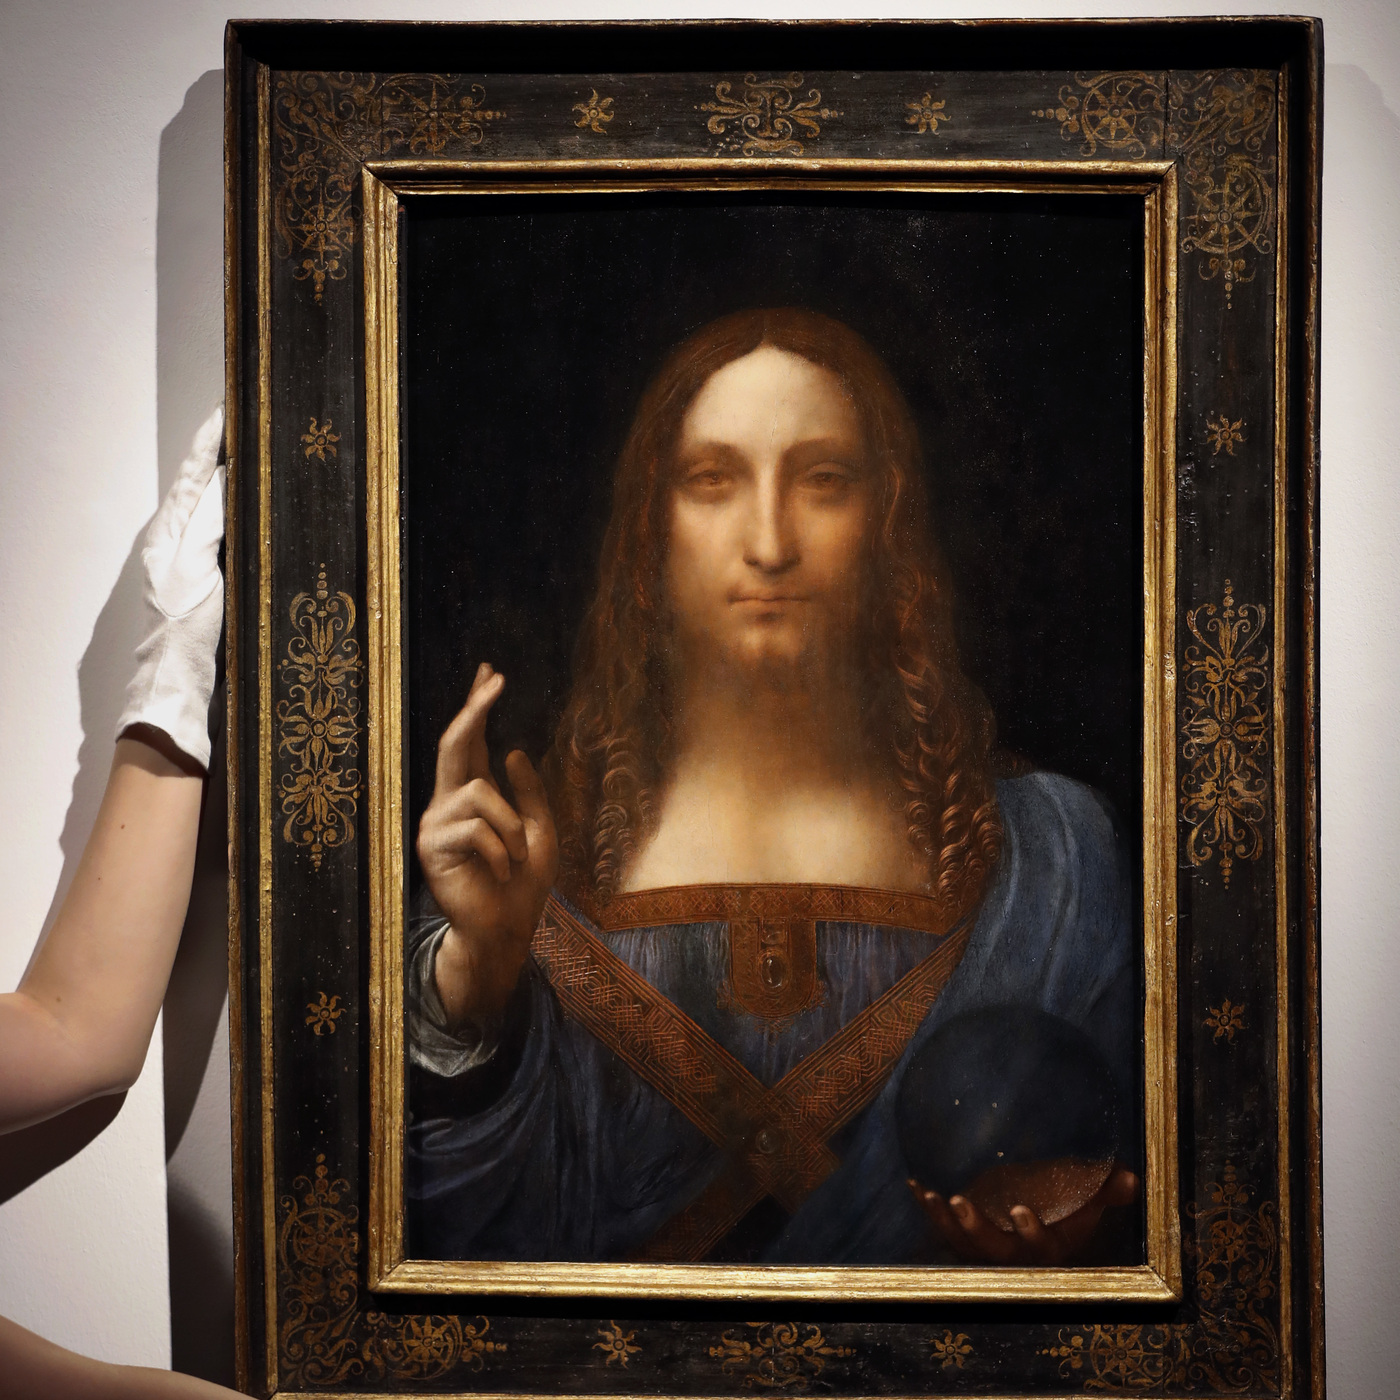 Leonardo Da Vinci Portrait Of Christ Sells For Record ... Da Vinci Paintings